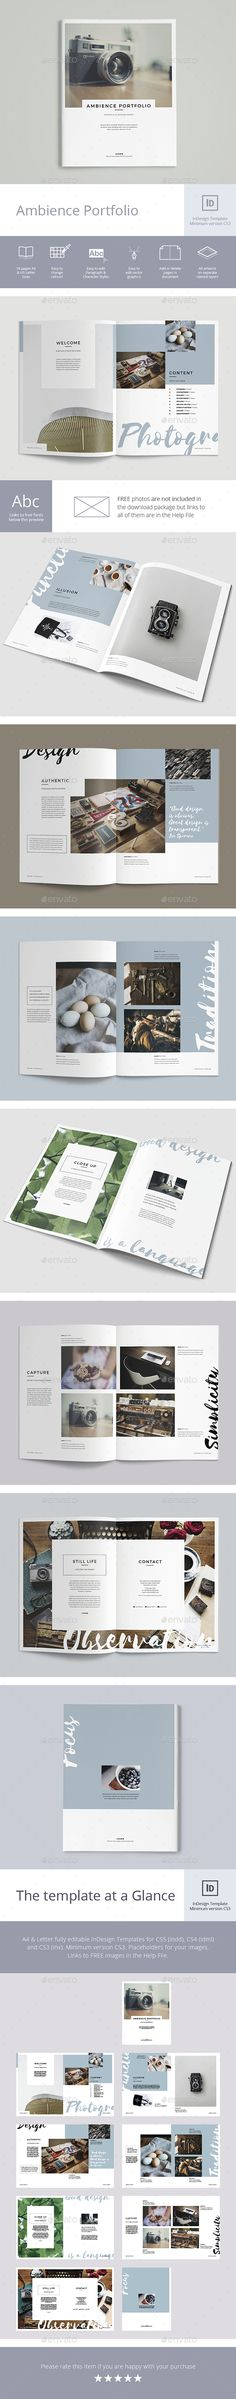 Ambience Portfolio - #Portfolio #Brochures Download here: https://graphicriver.net/item/ambience-portfolio/20099482?ref=alena994